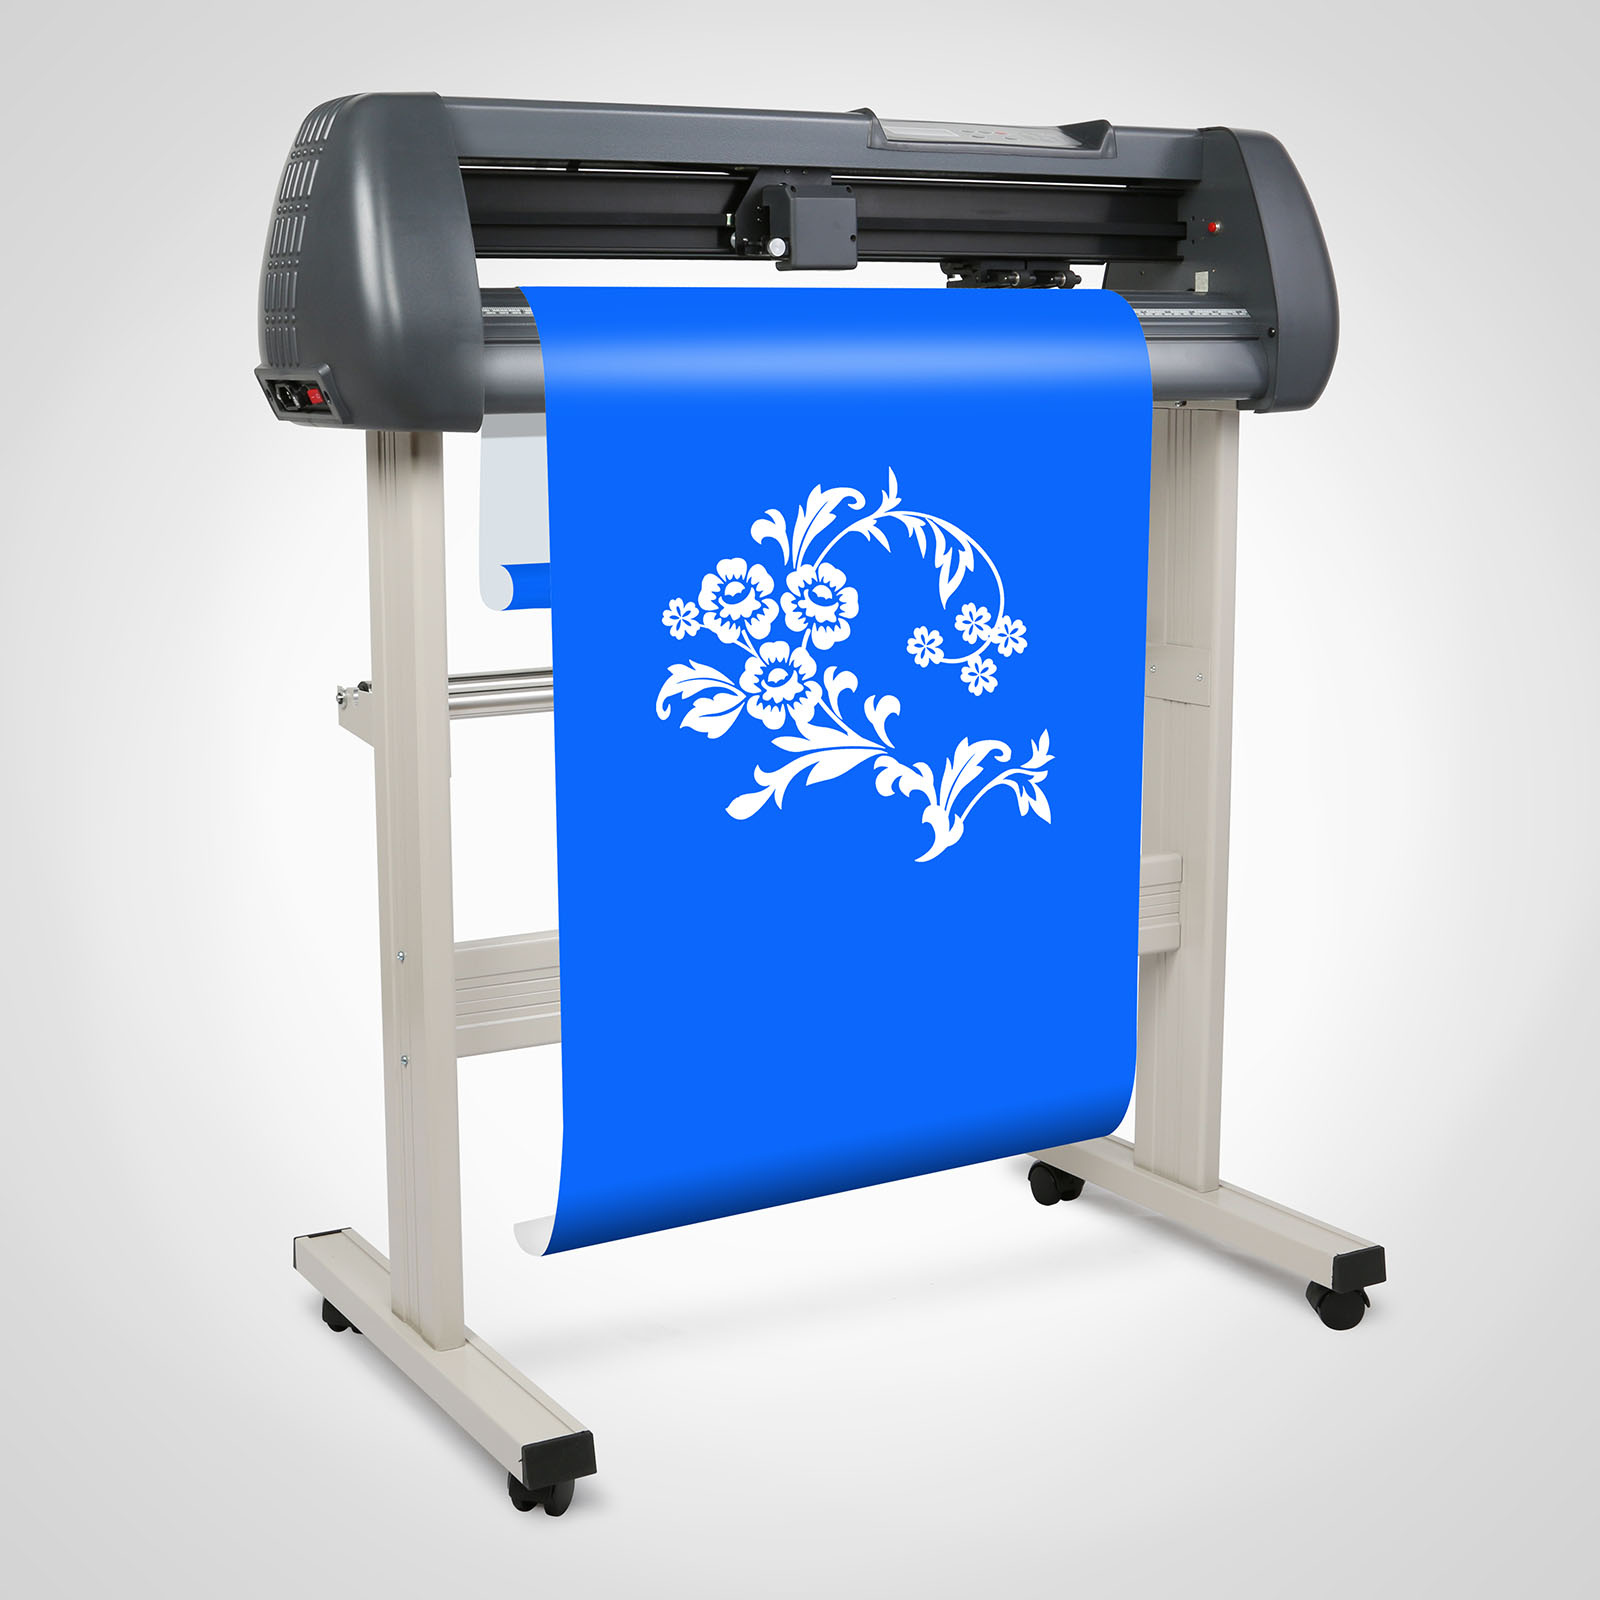 28 vinyl cutting plotter sticker sign printer cutter w artcut software ebay. Black Bedroom Furniture Sets. Home Design Ideas